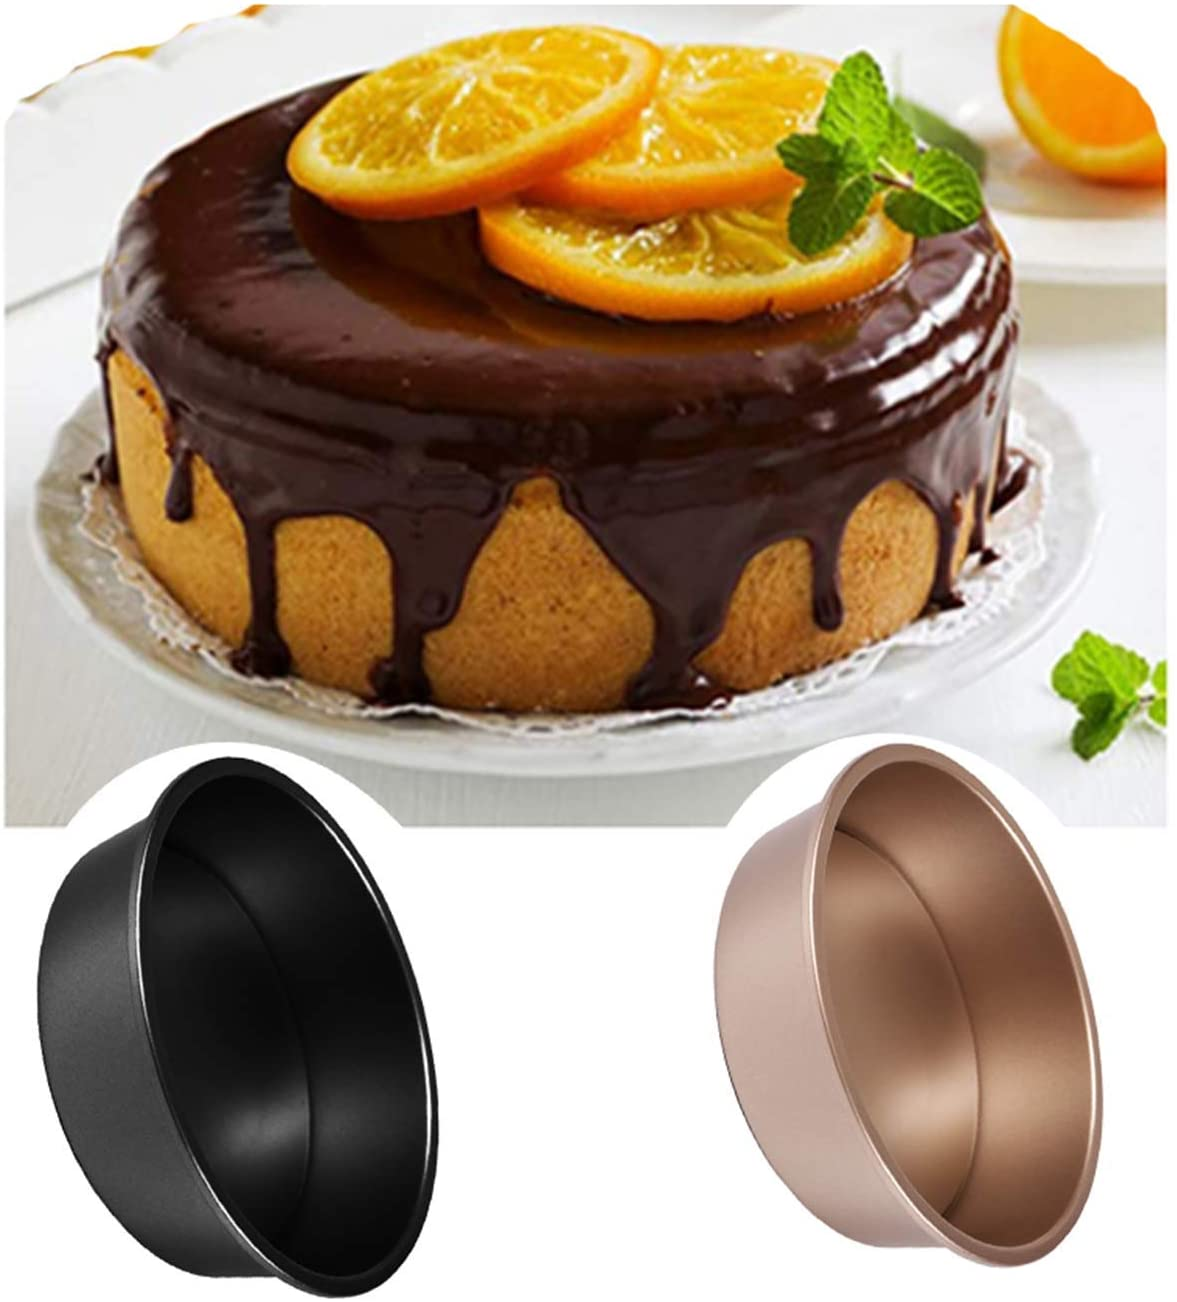 6/8Inch Round Cake Baking Mould Pan Tin Mold Tray Pastry Cake Decorating Tool Round Kitchen Baking Pastry Tool (Black/6